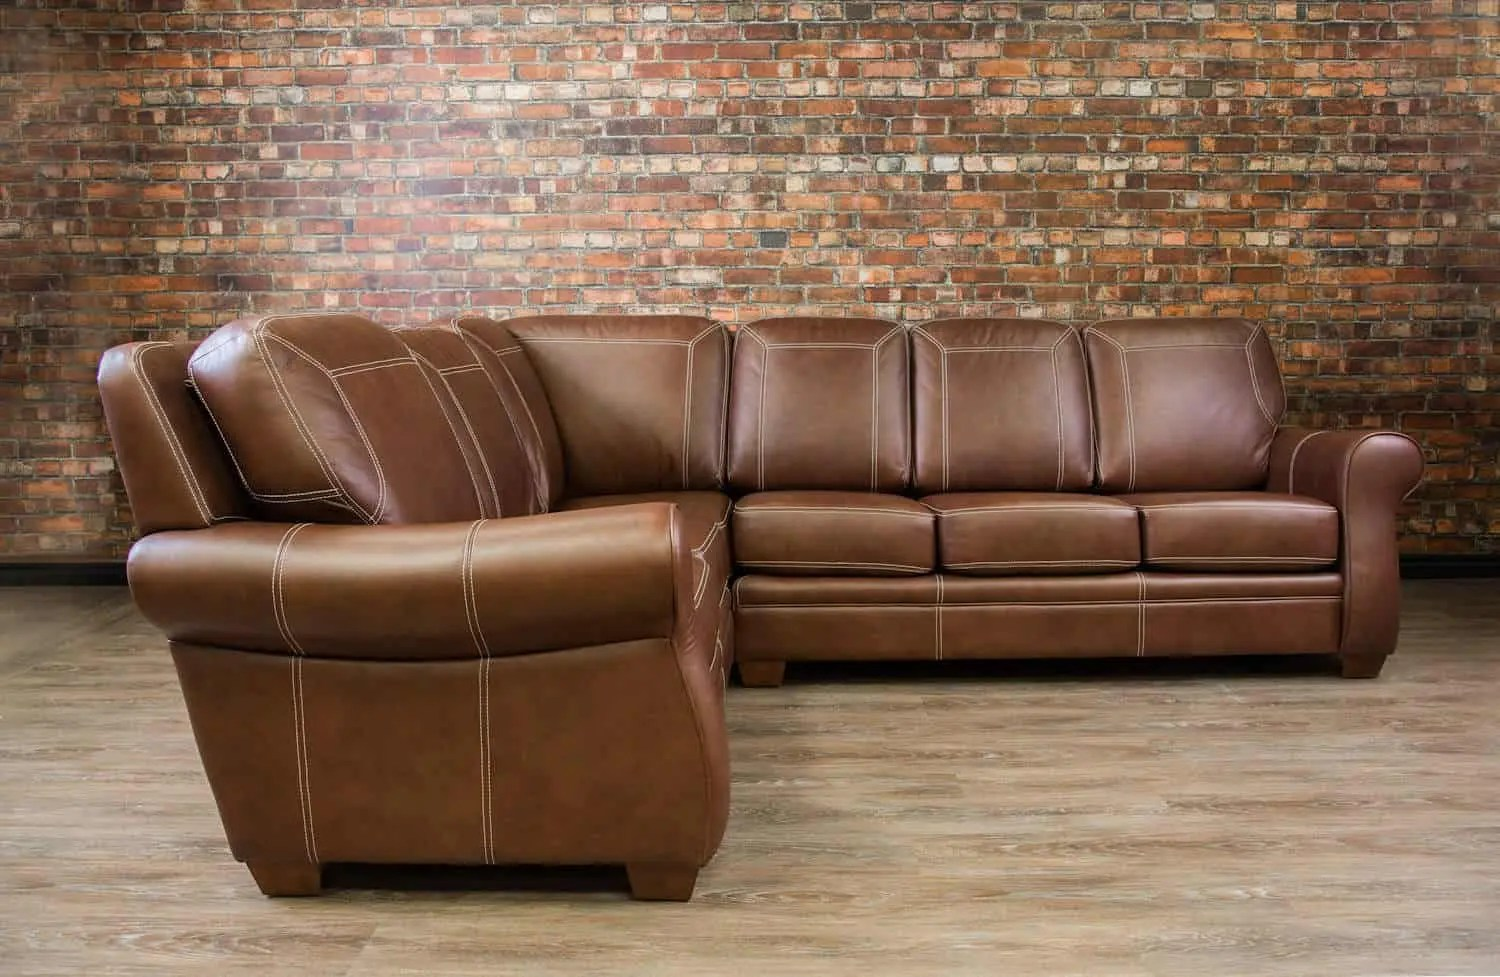 Leather Couch Canada The Humber Leather Sectional Canada 39s Boss Leather Sofas